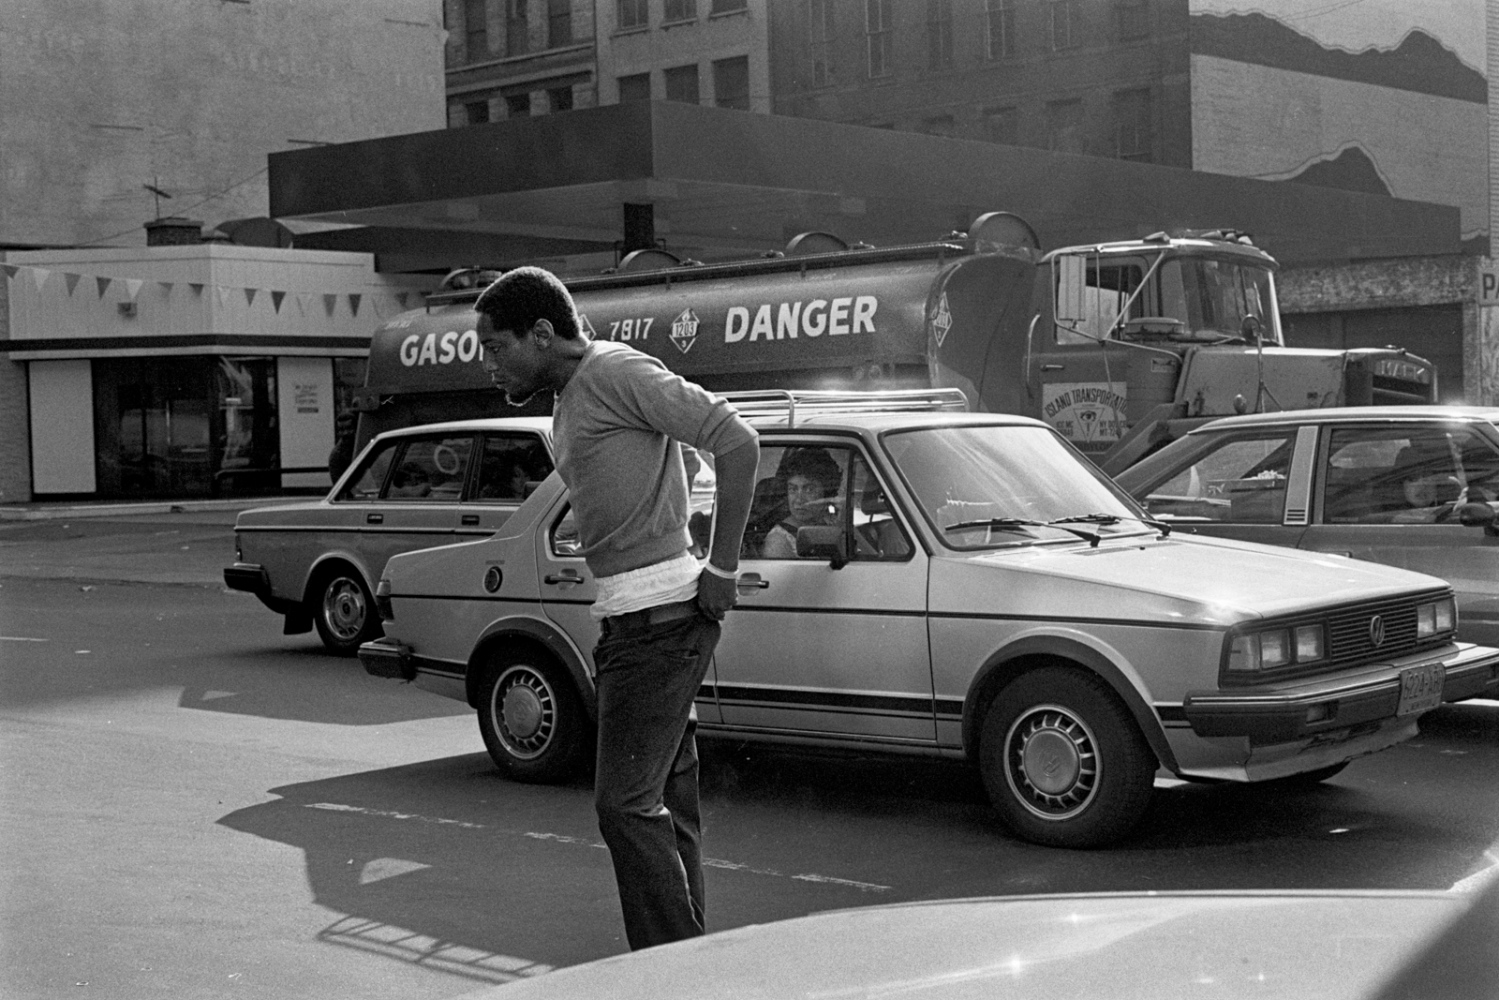 Man pushed to the breaking point, gets his head together and pulls up his pants. 42nd St, 1981